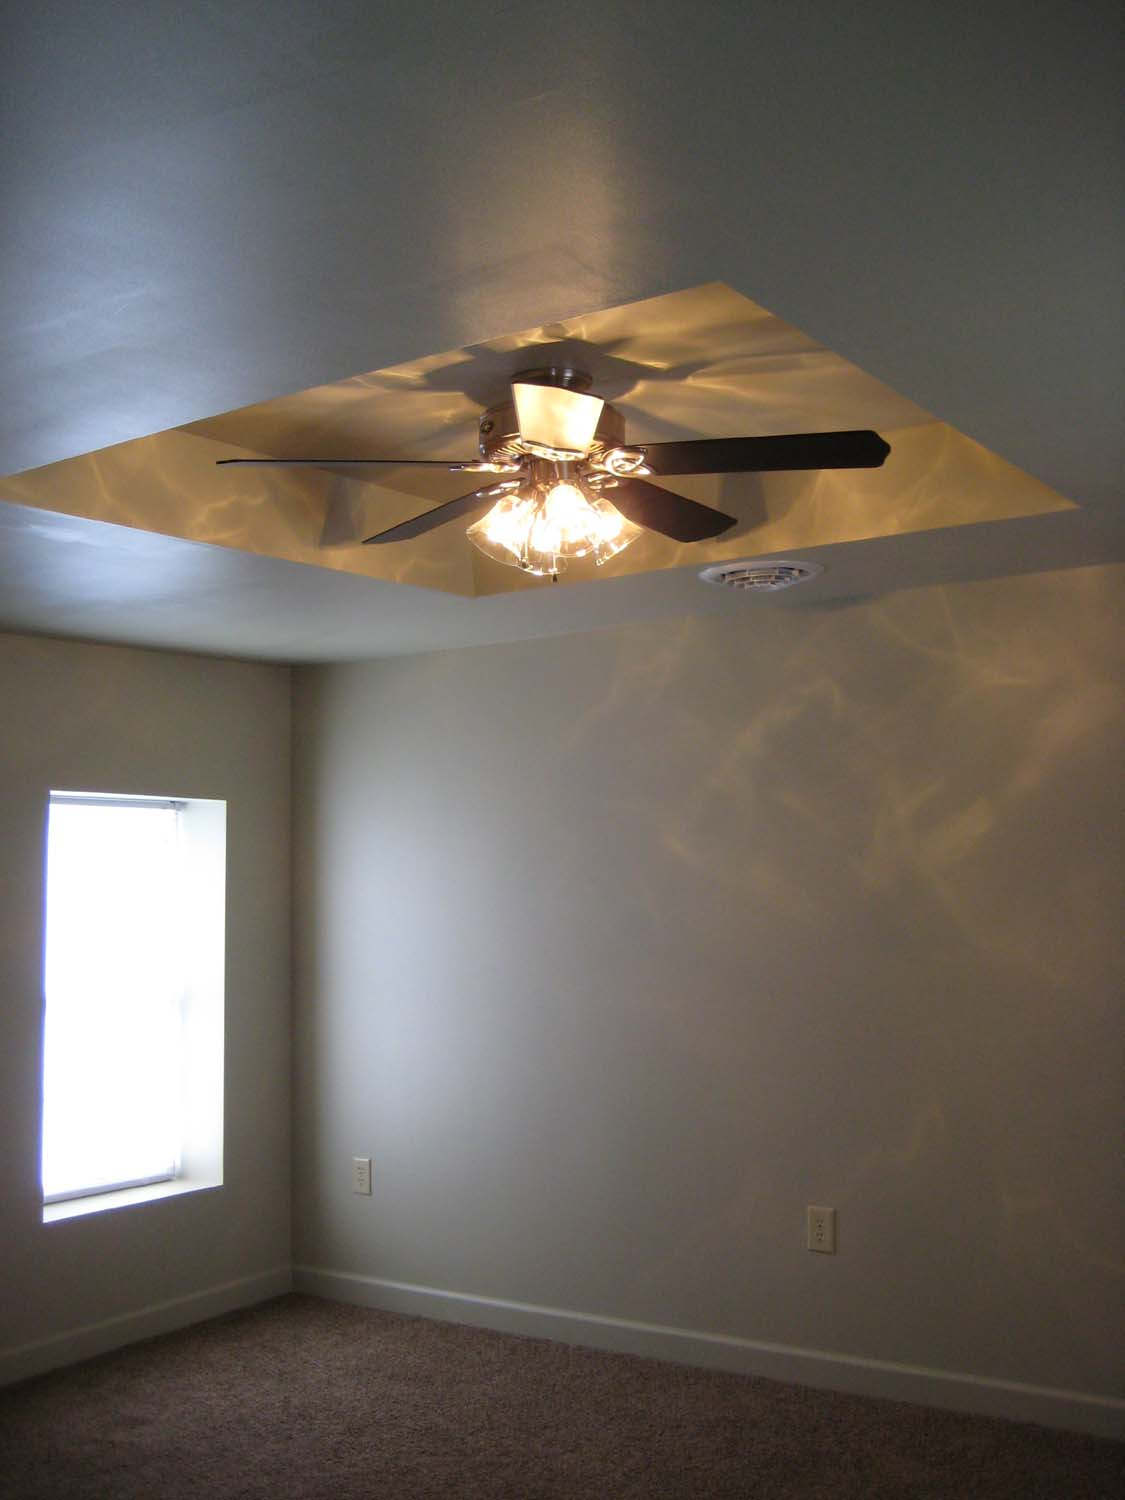 Recessed Lighting Ceiling Fan Strobe : Electrical ceiling fan with recessed best free home